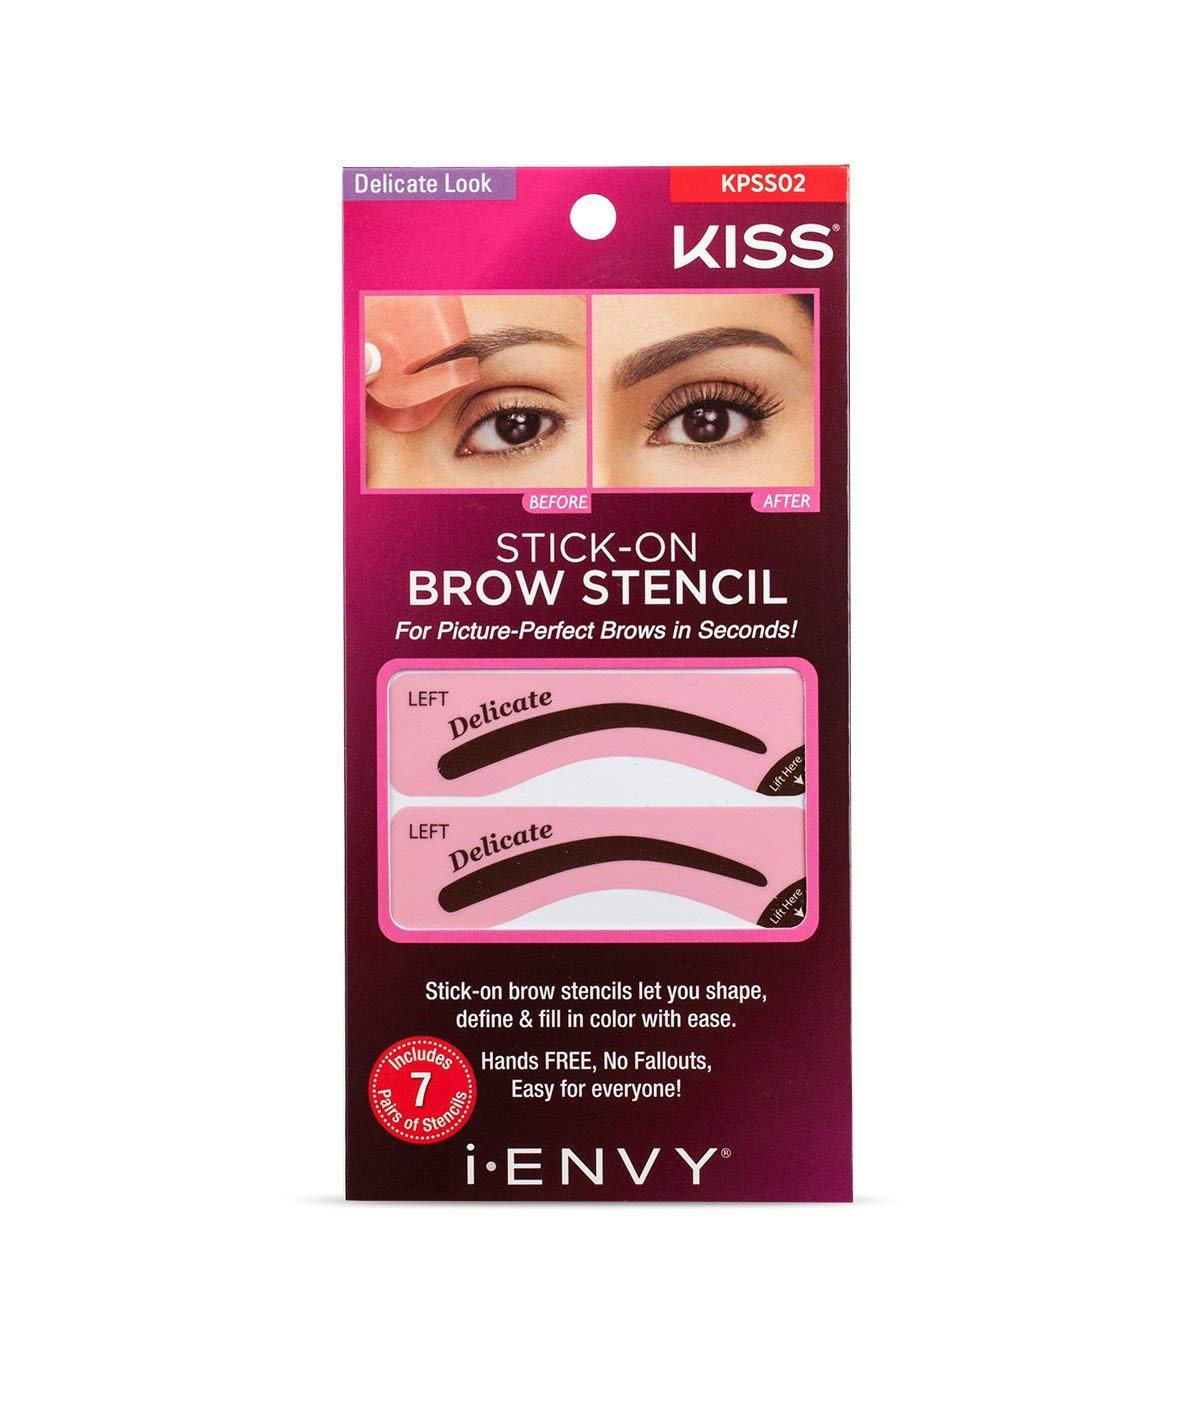 i-Envy by Kiss Stick-On Brow Stencil (KPSS02 Delicate Look)